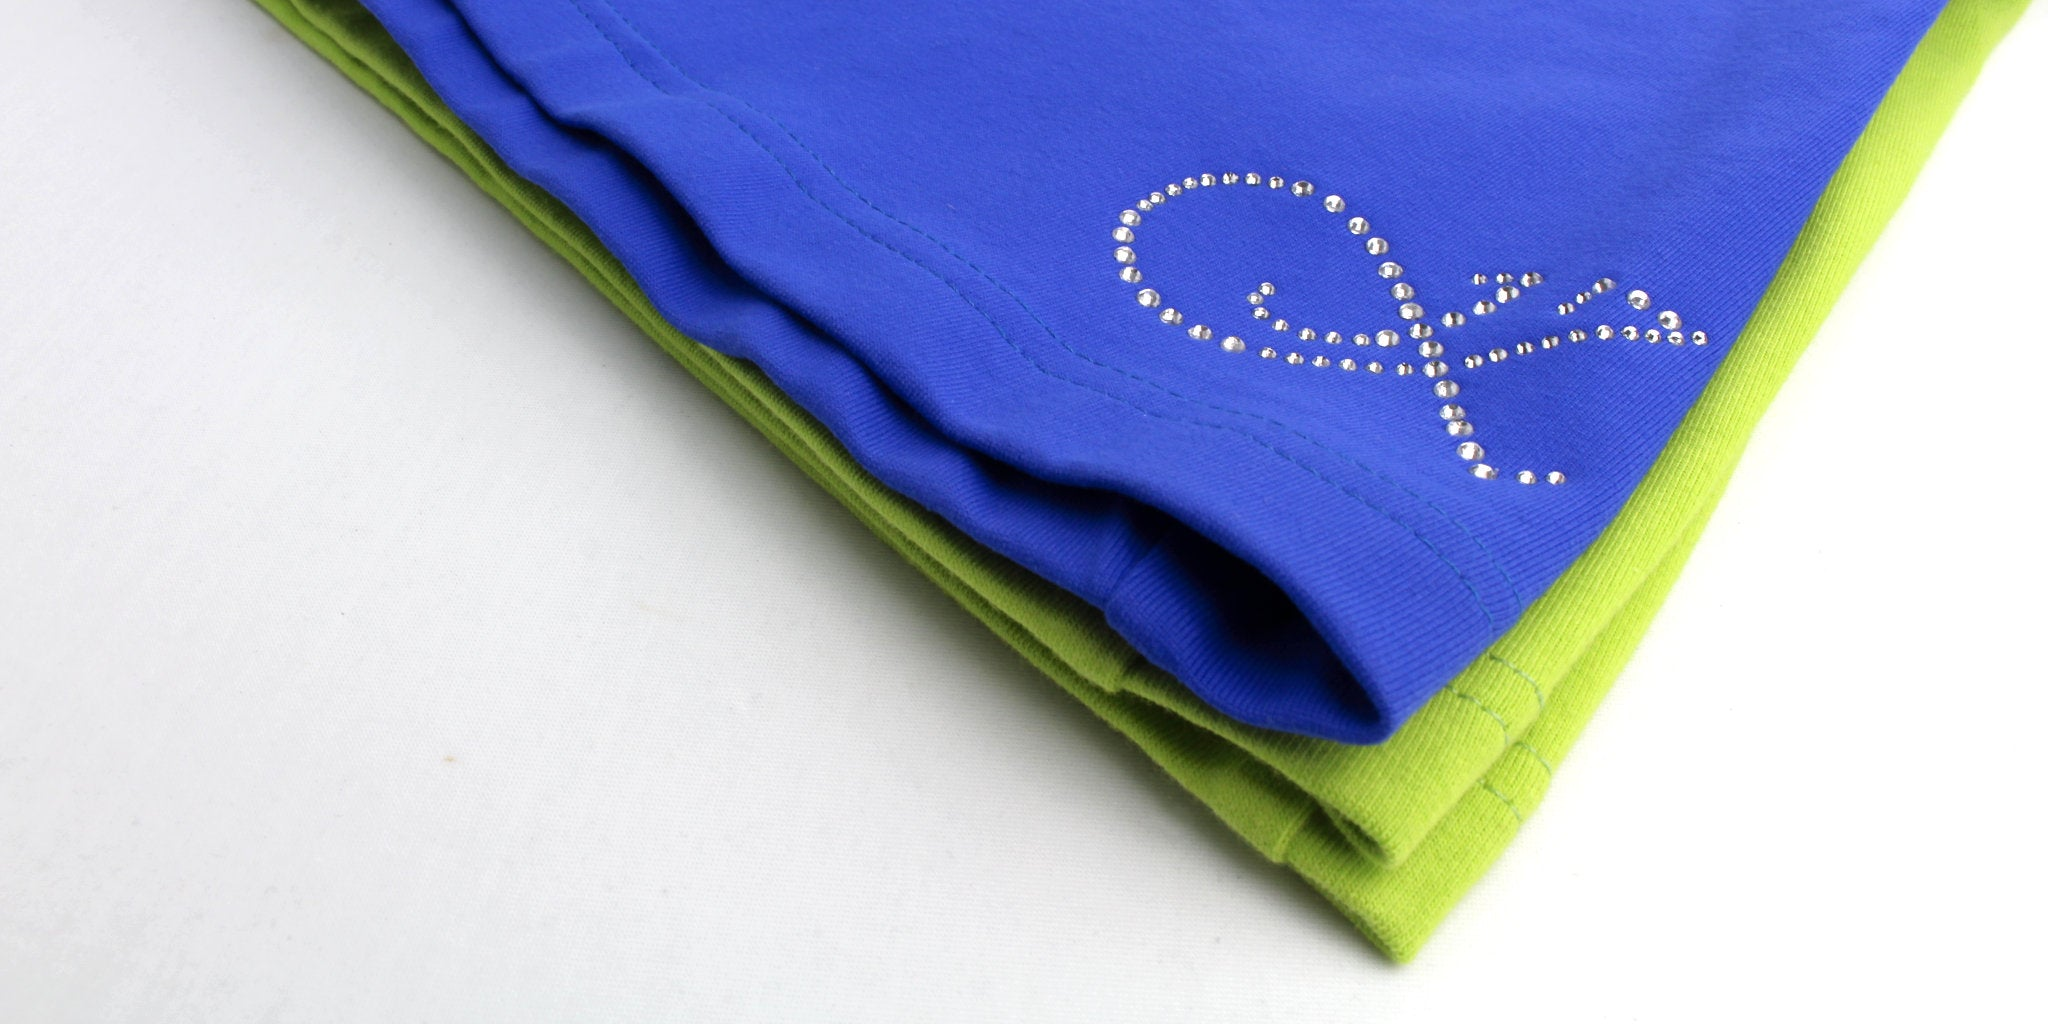 Pile of studio pole fitness clothing in green and blue colours made and designed in Brisbane Australia